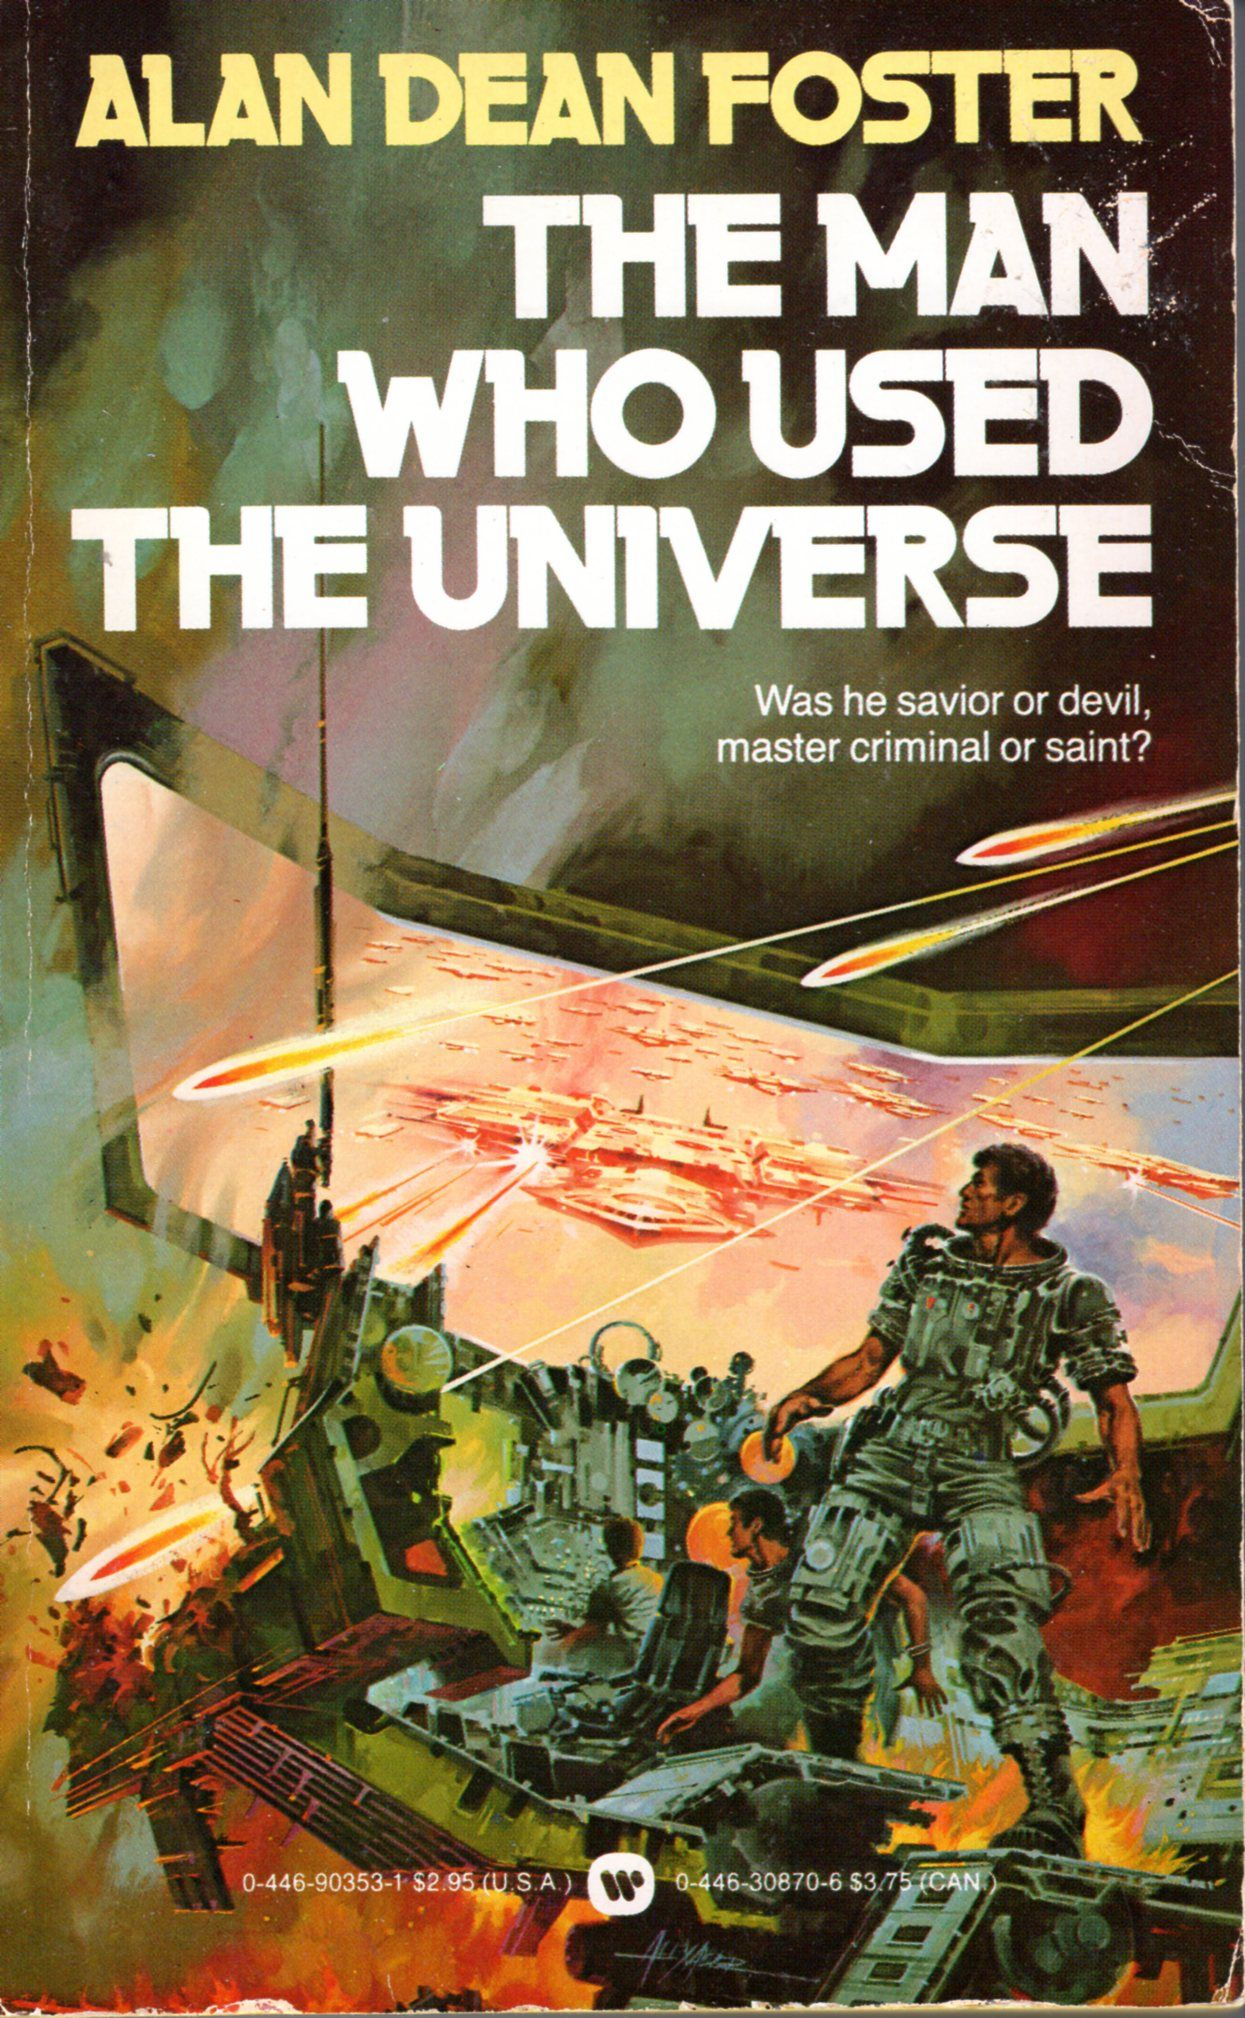 Jeff Foster Libros The Man Who Used The Universe Alan Dean Foster Cover By